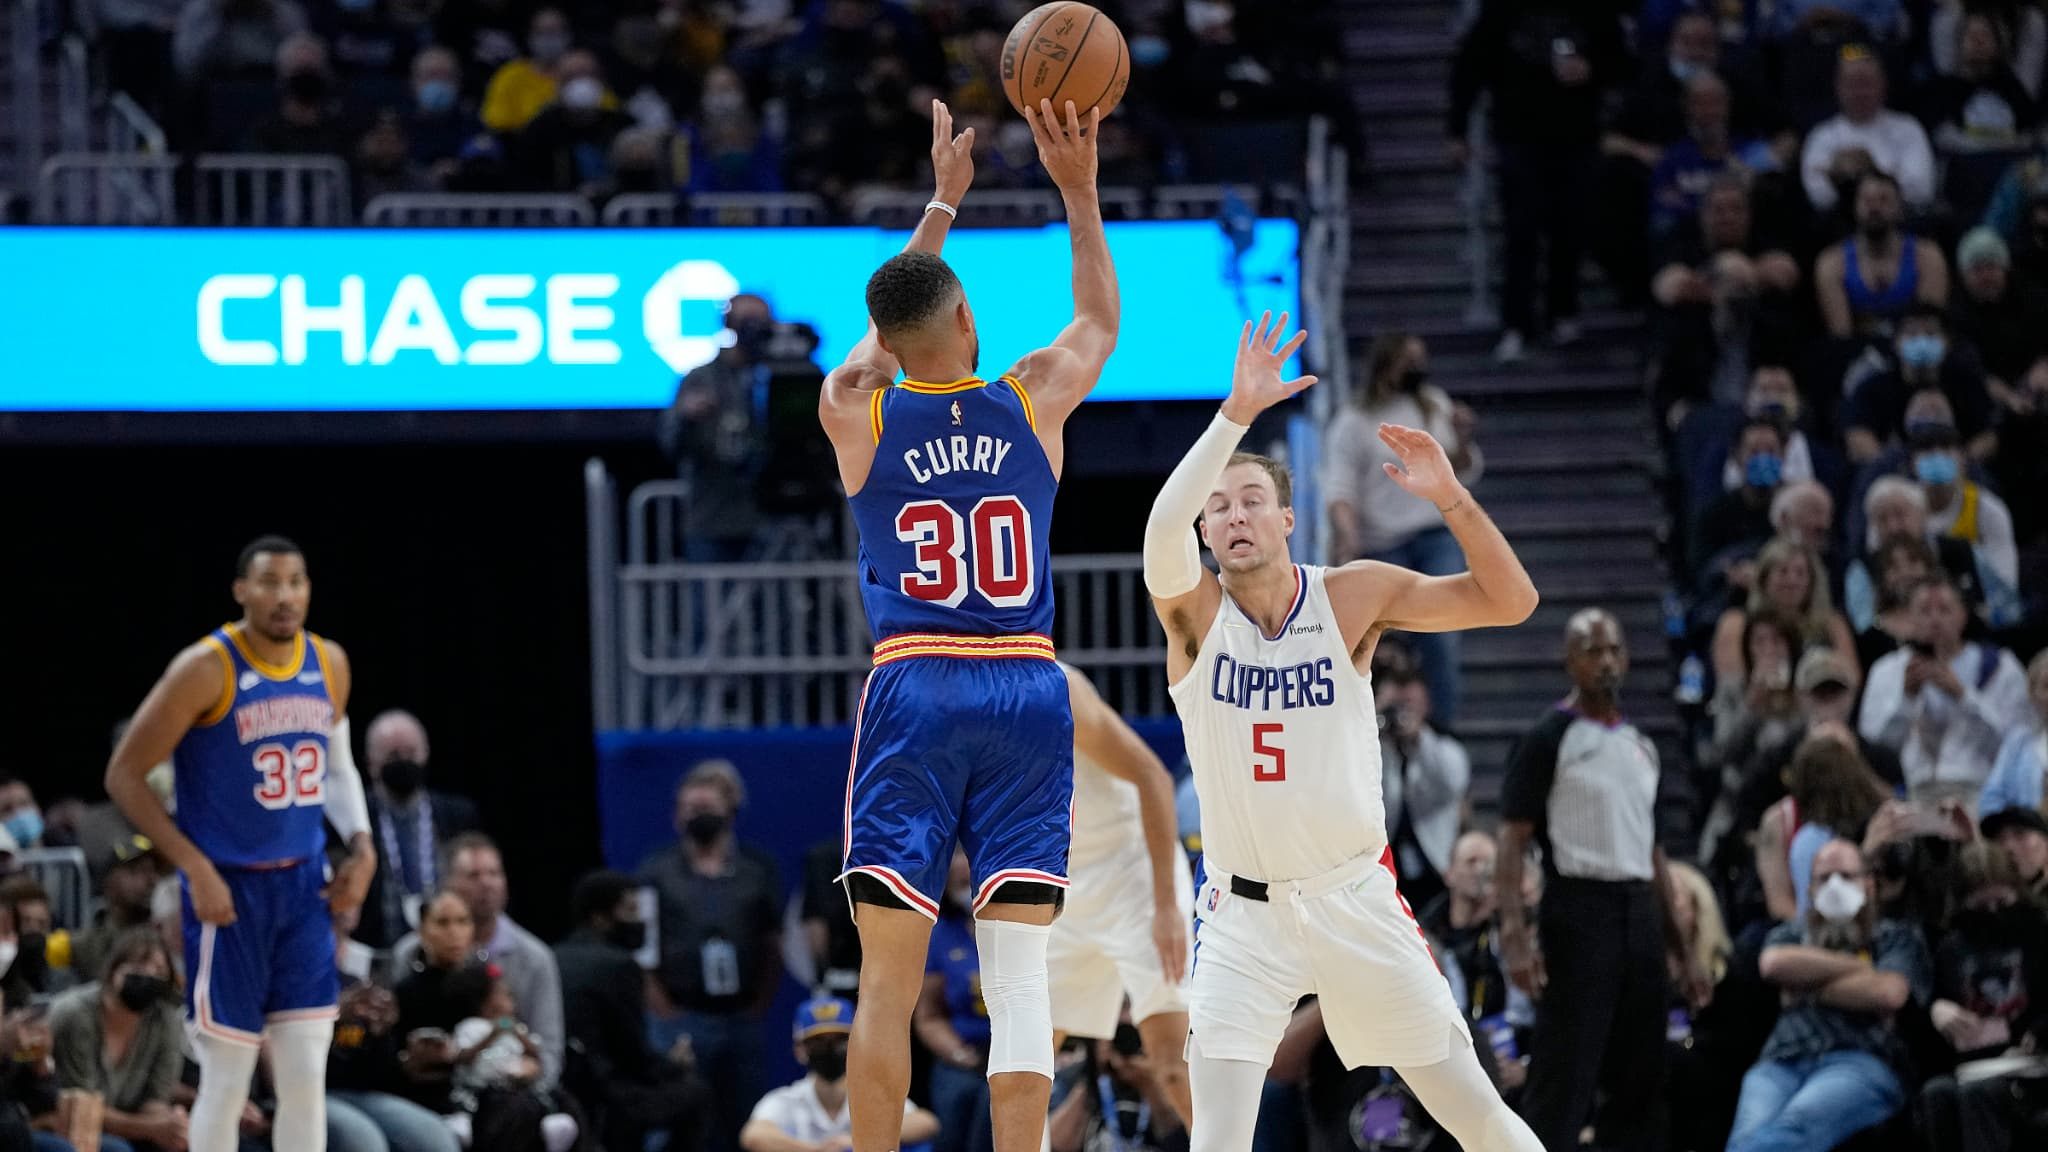 Already on fire; Curry sickens the Clippers